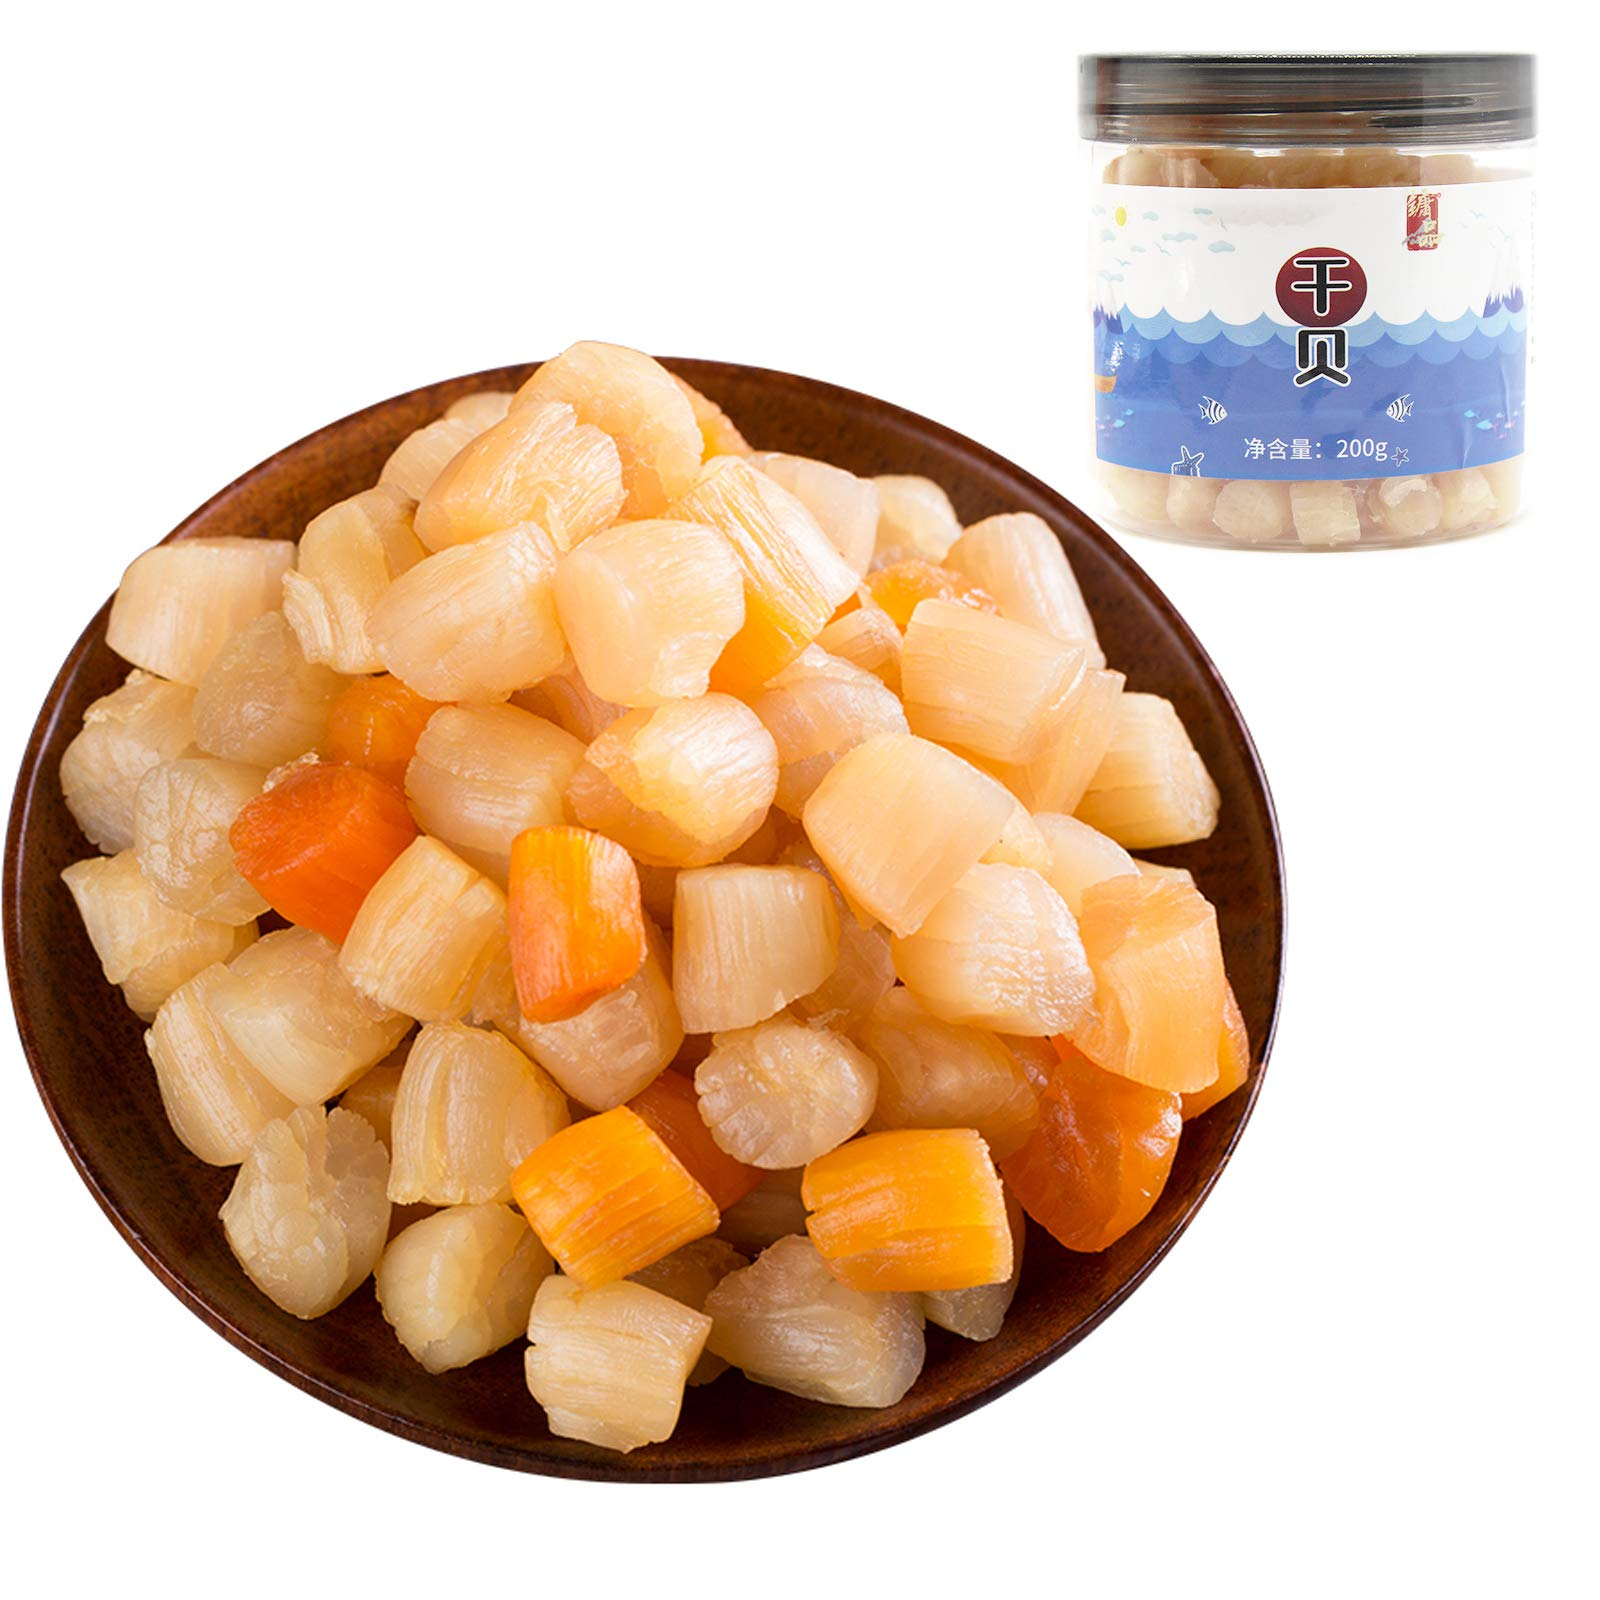 Dried Scallops Dried Seafood Conpoy Seafood use in Soup or Asian cuisine ingredient, 7 OZ (200 Gram)